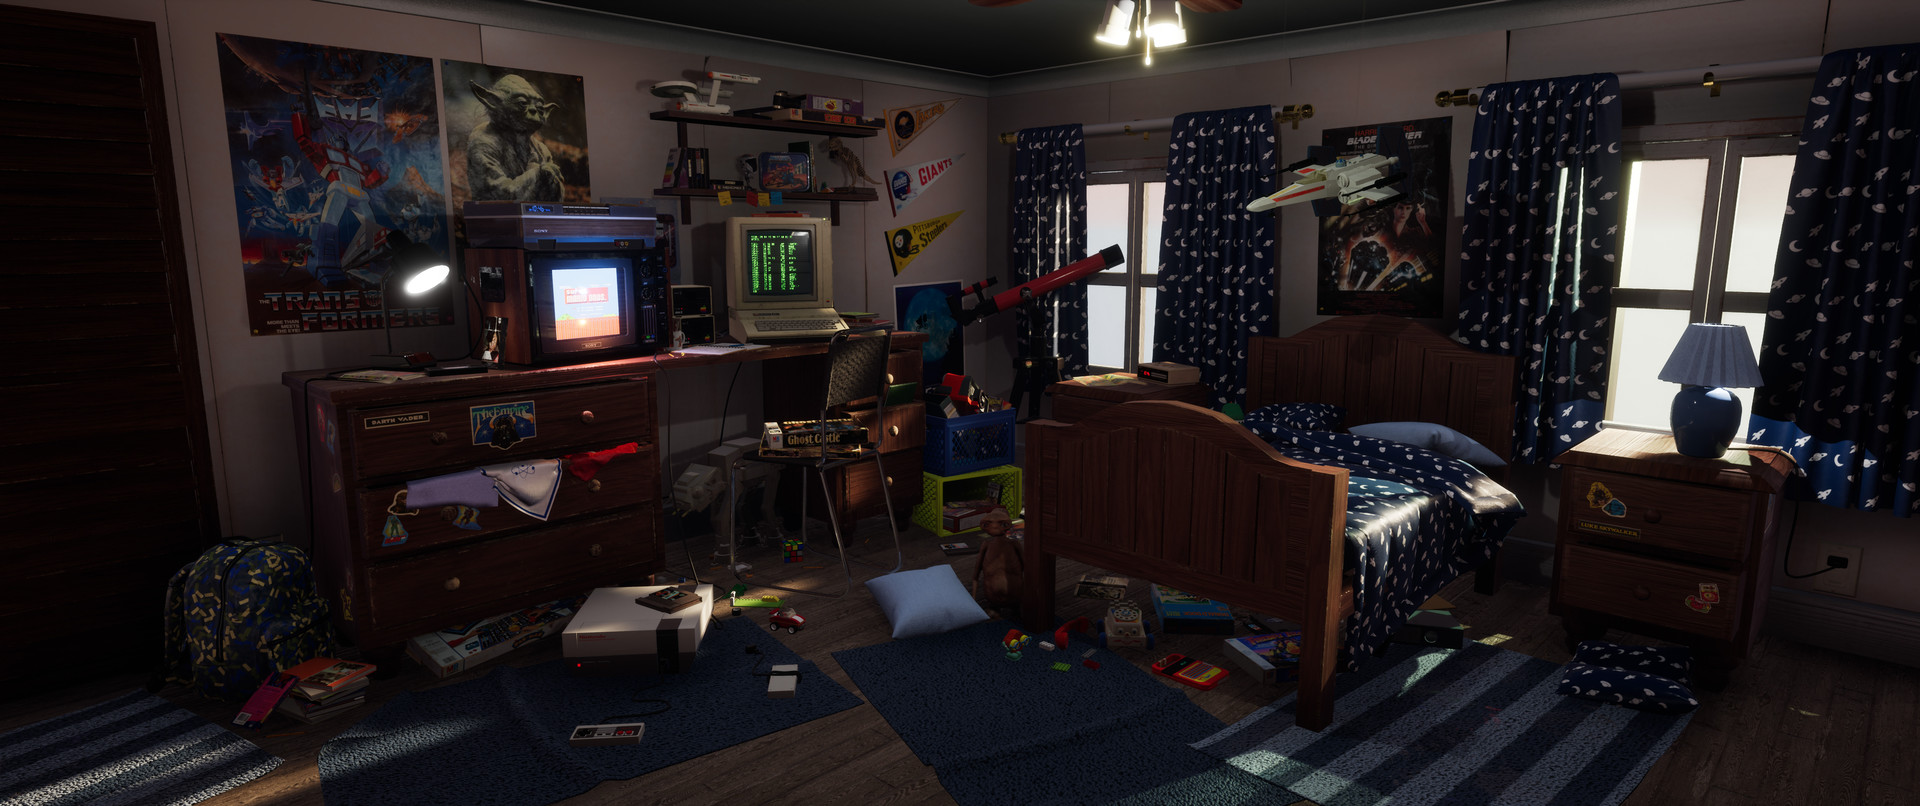 Tom Radford  Retro 80s Bedroom Unreal Engine 4